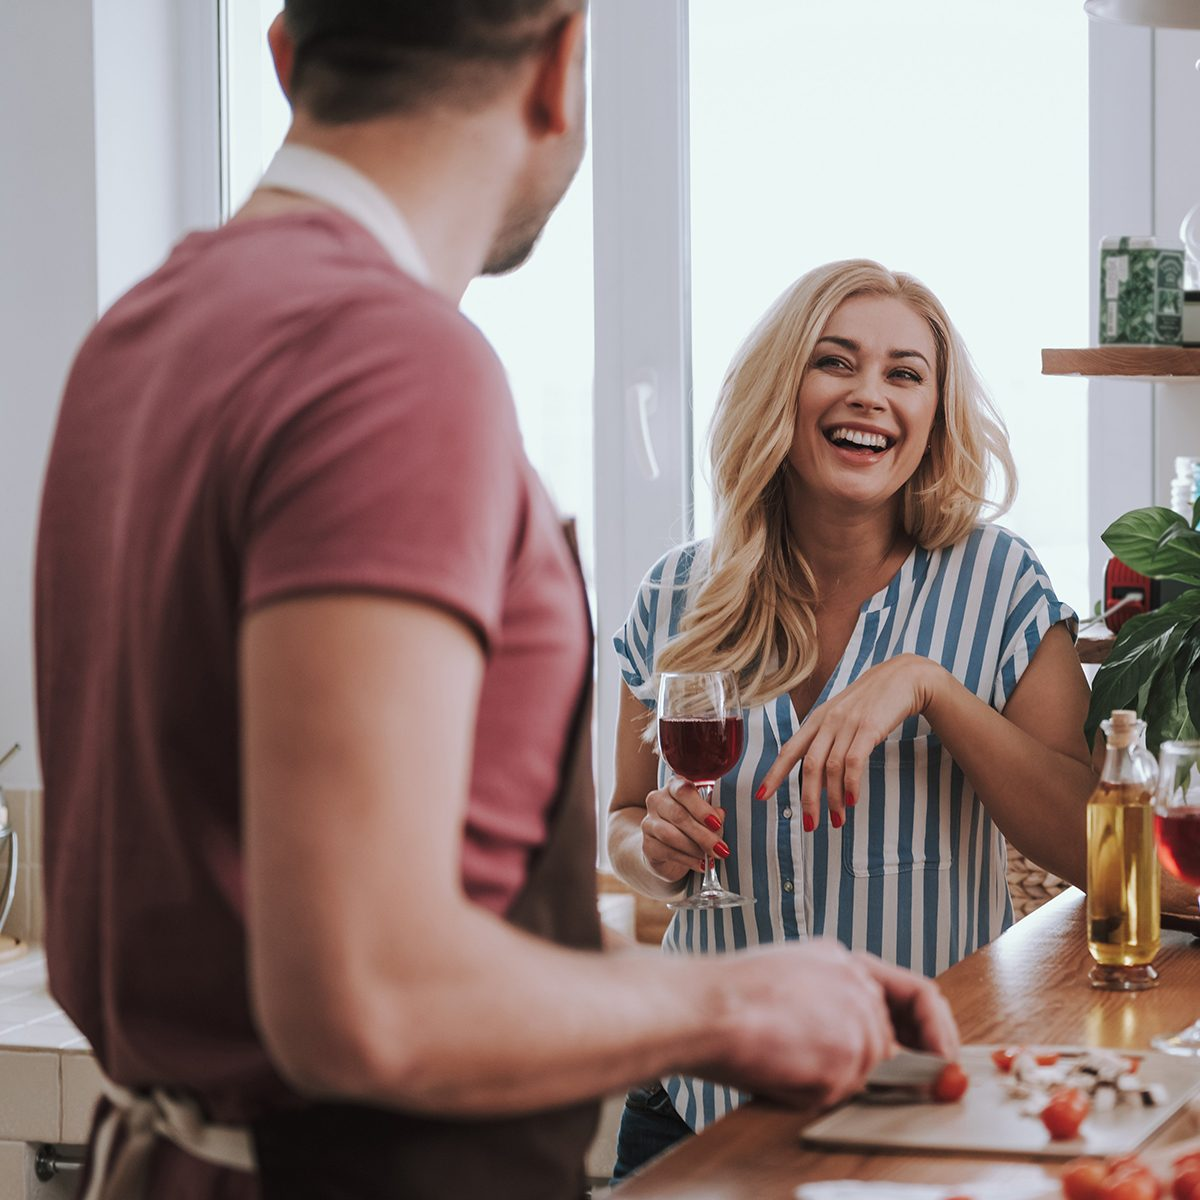 Man cooking while woman drinking wine watches